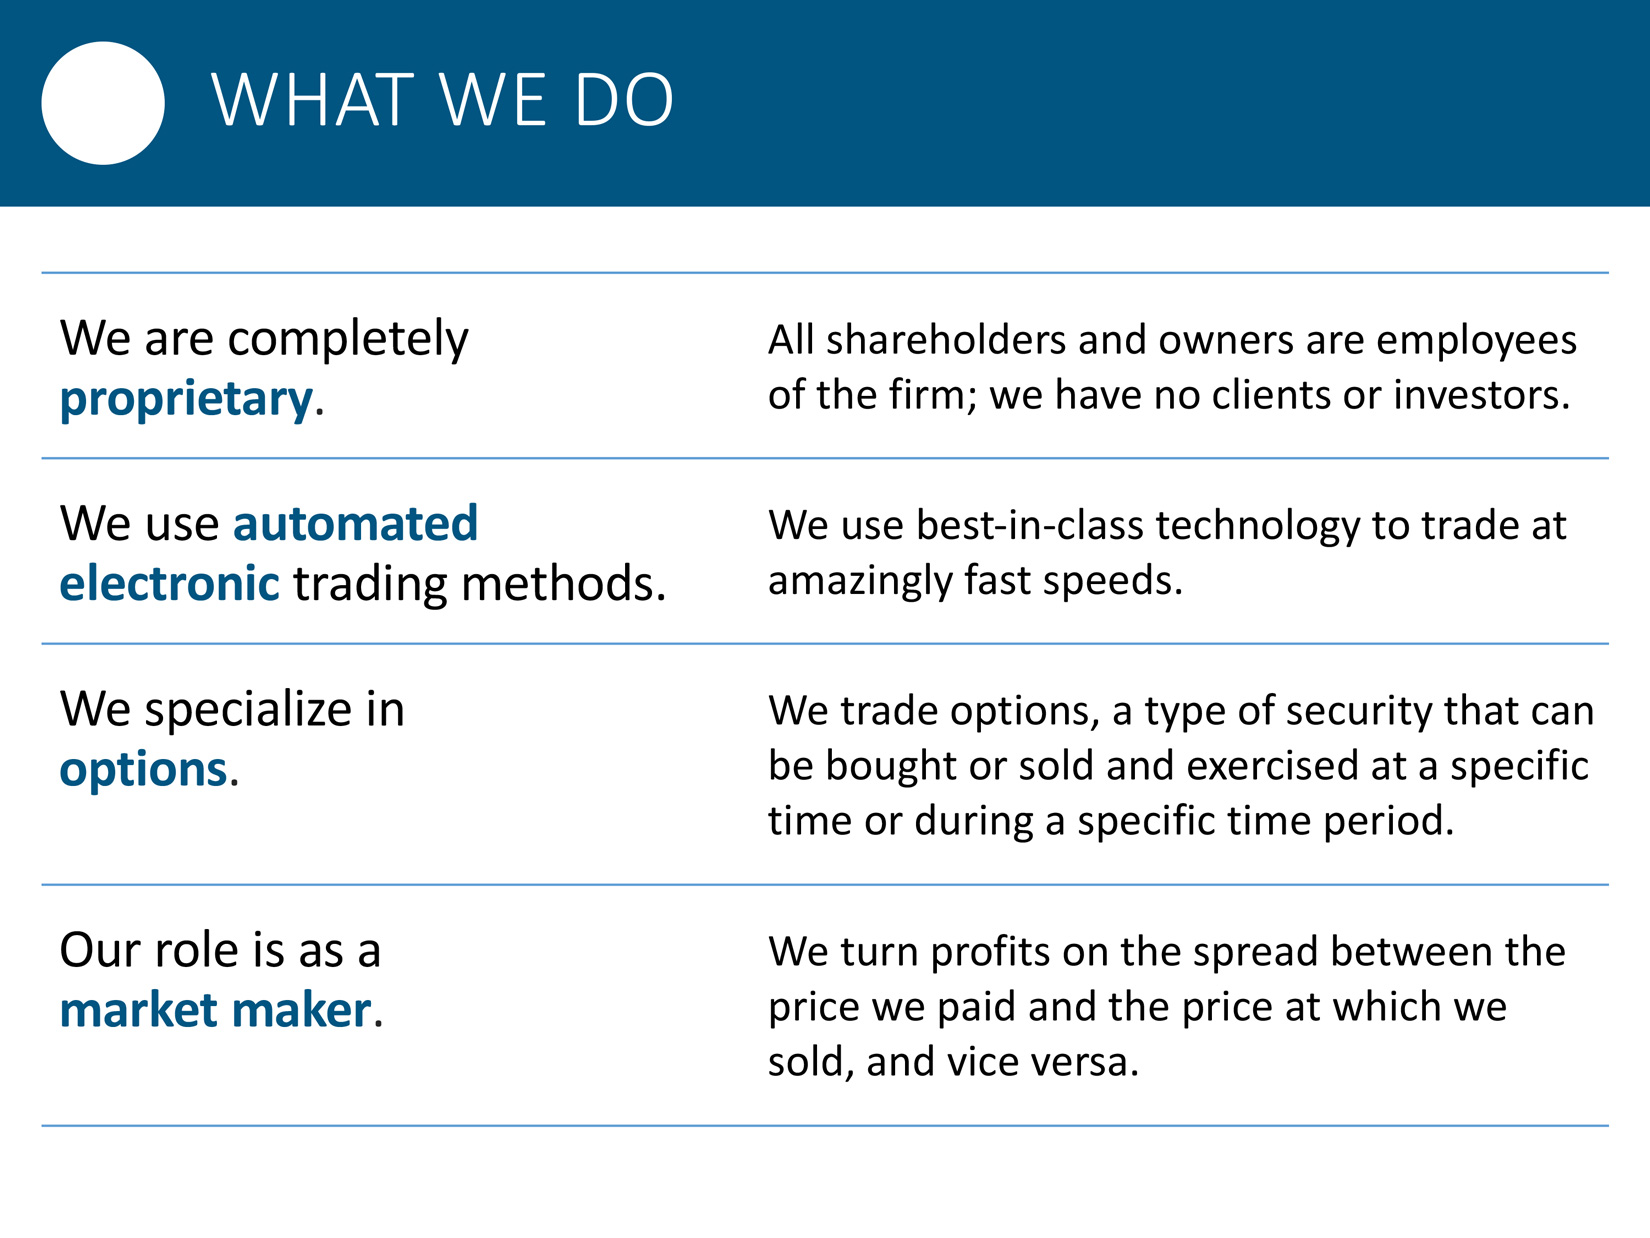 PowerPoint deck for recruitment efforts of options-trading firm.